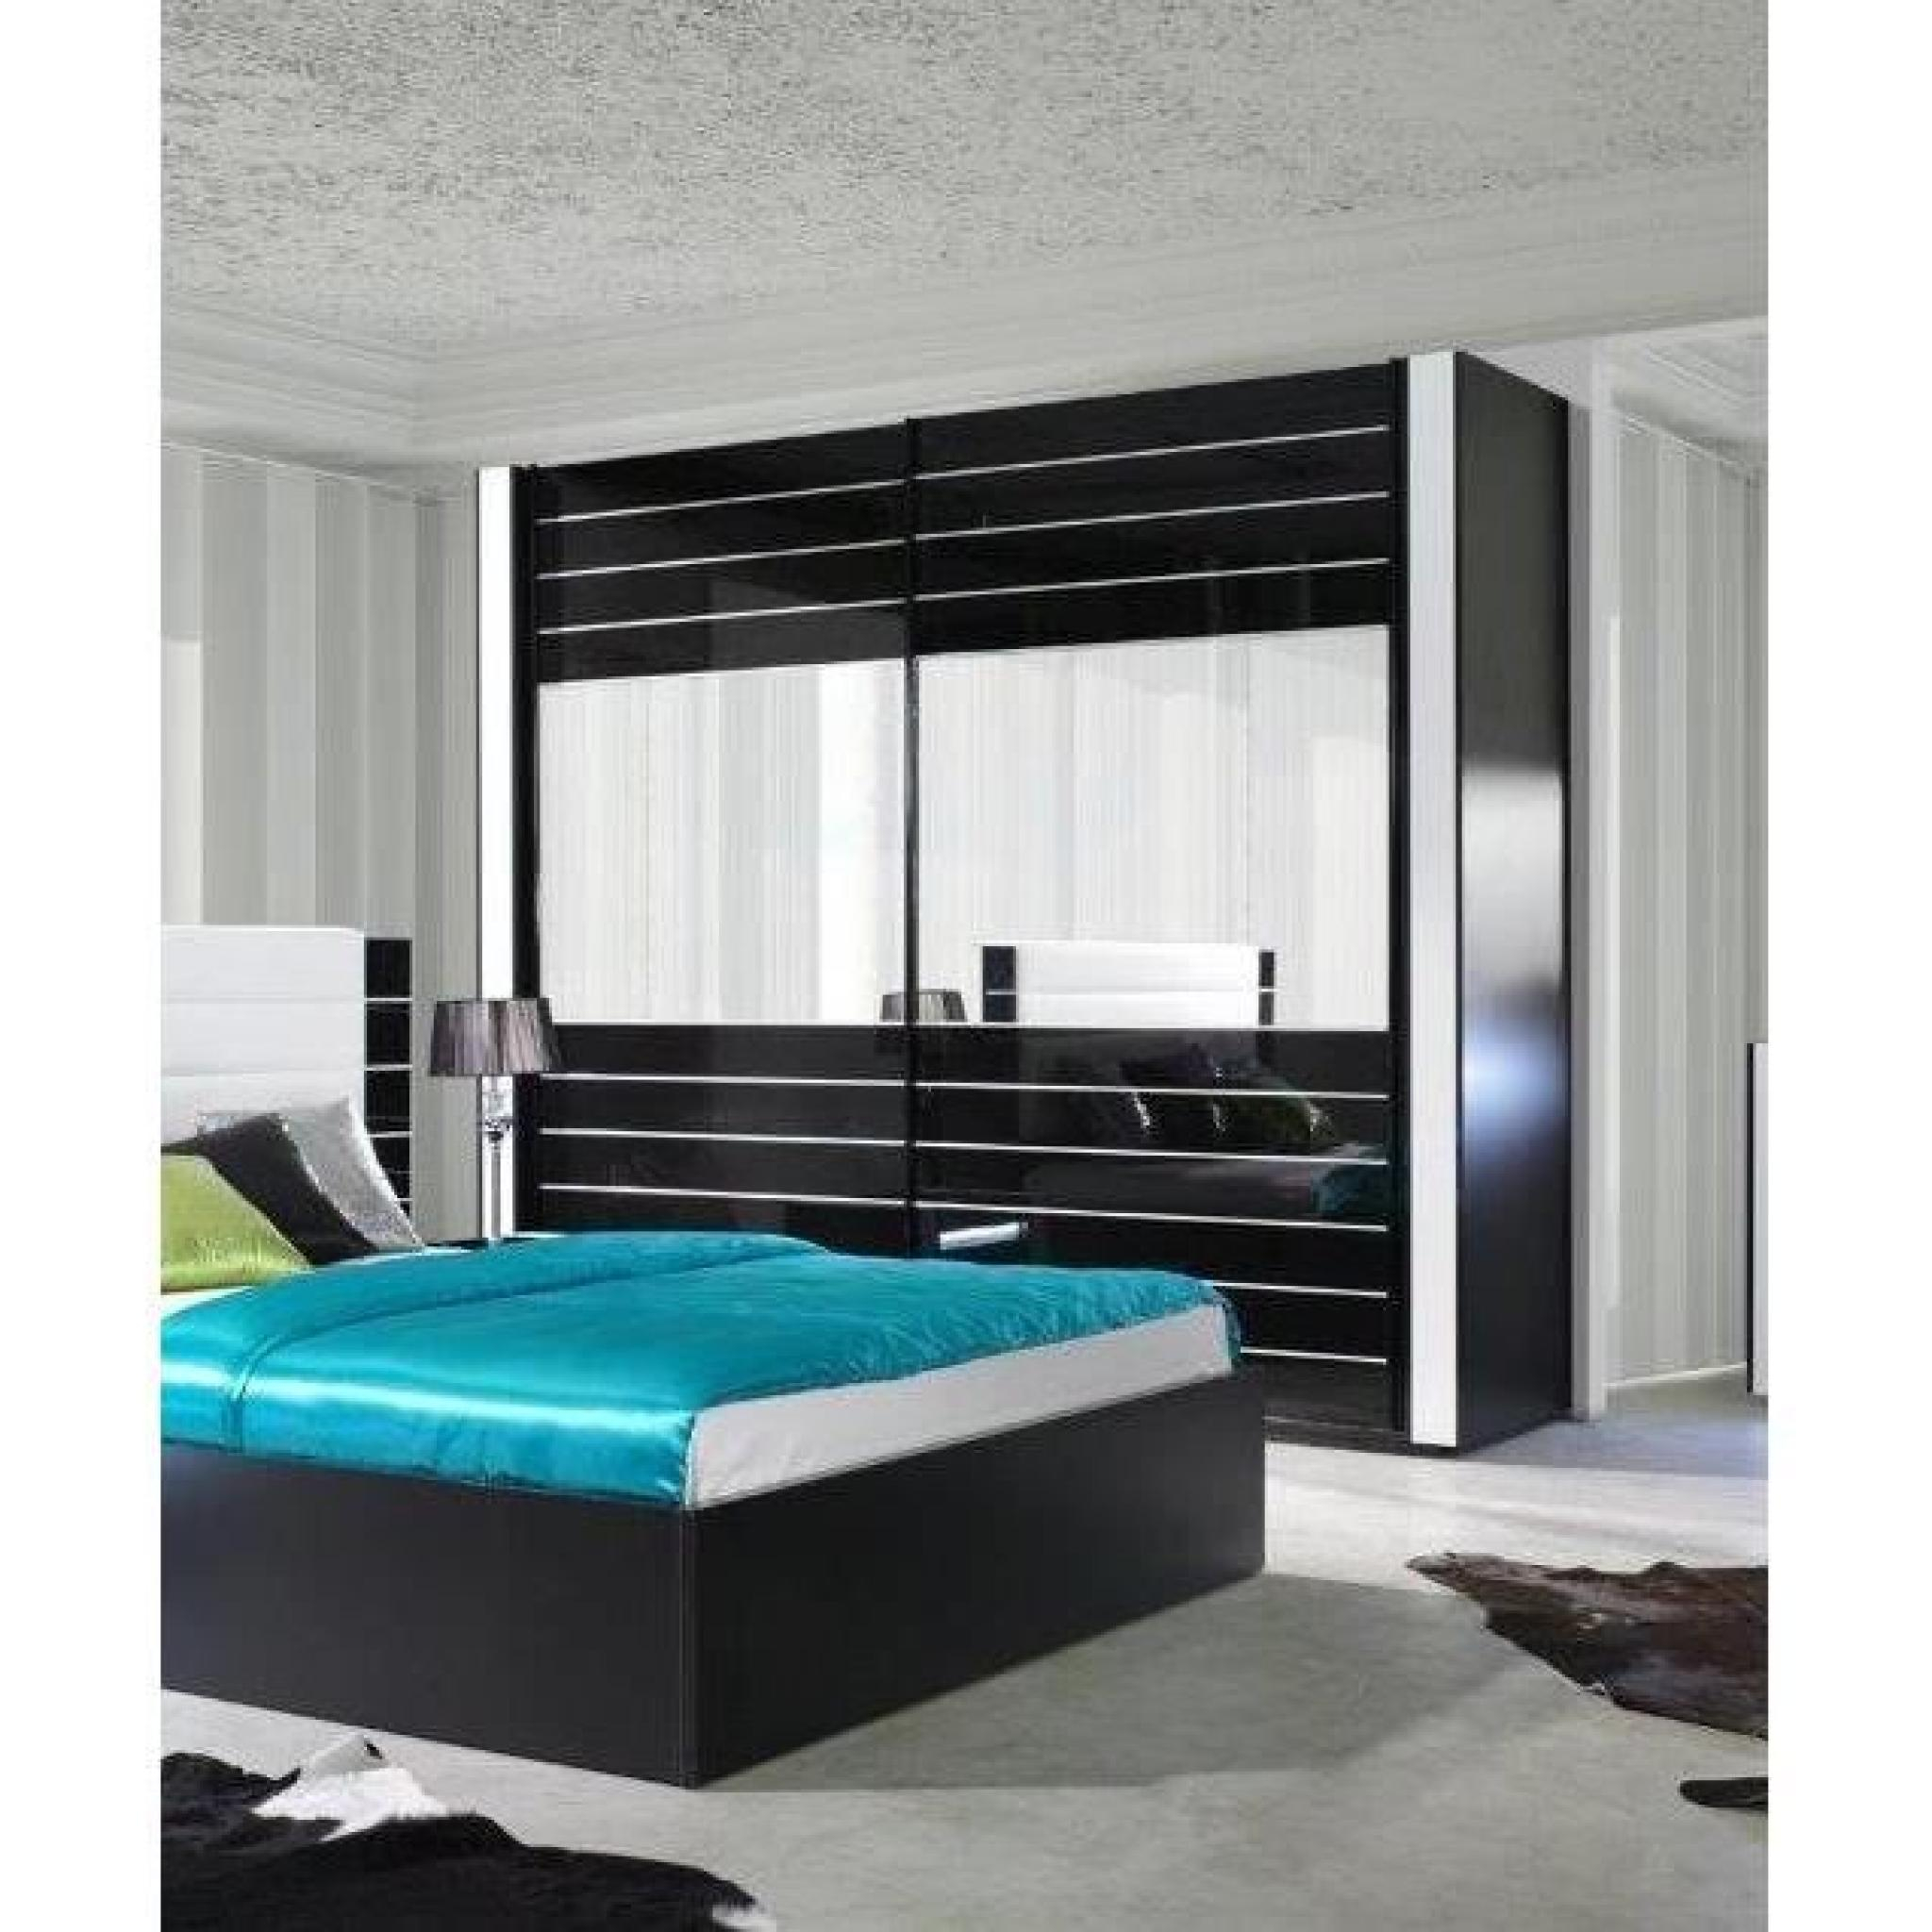 armoire lina noir et blanche laqu e tout quip e meuble. Black Bedroom Furniture Sets. Home Design Ideas